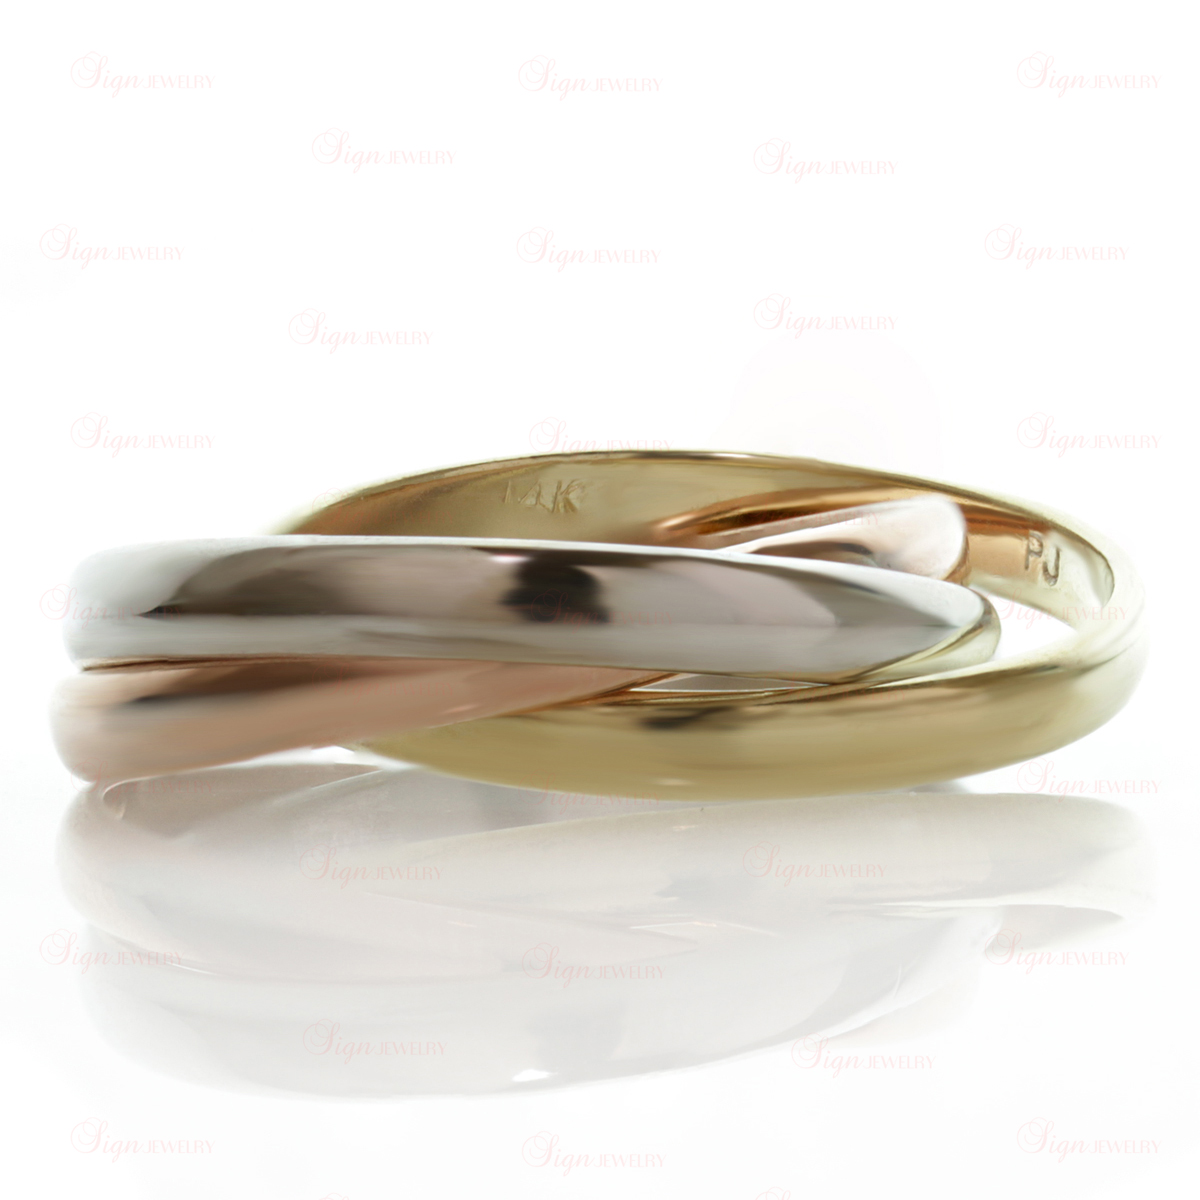 3-Band 14k Tri-Gold Rolling Ring Size 61